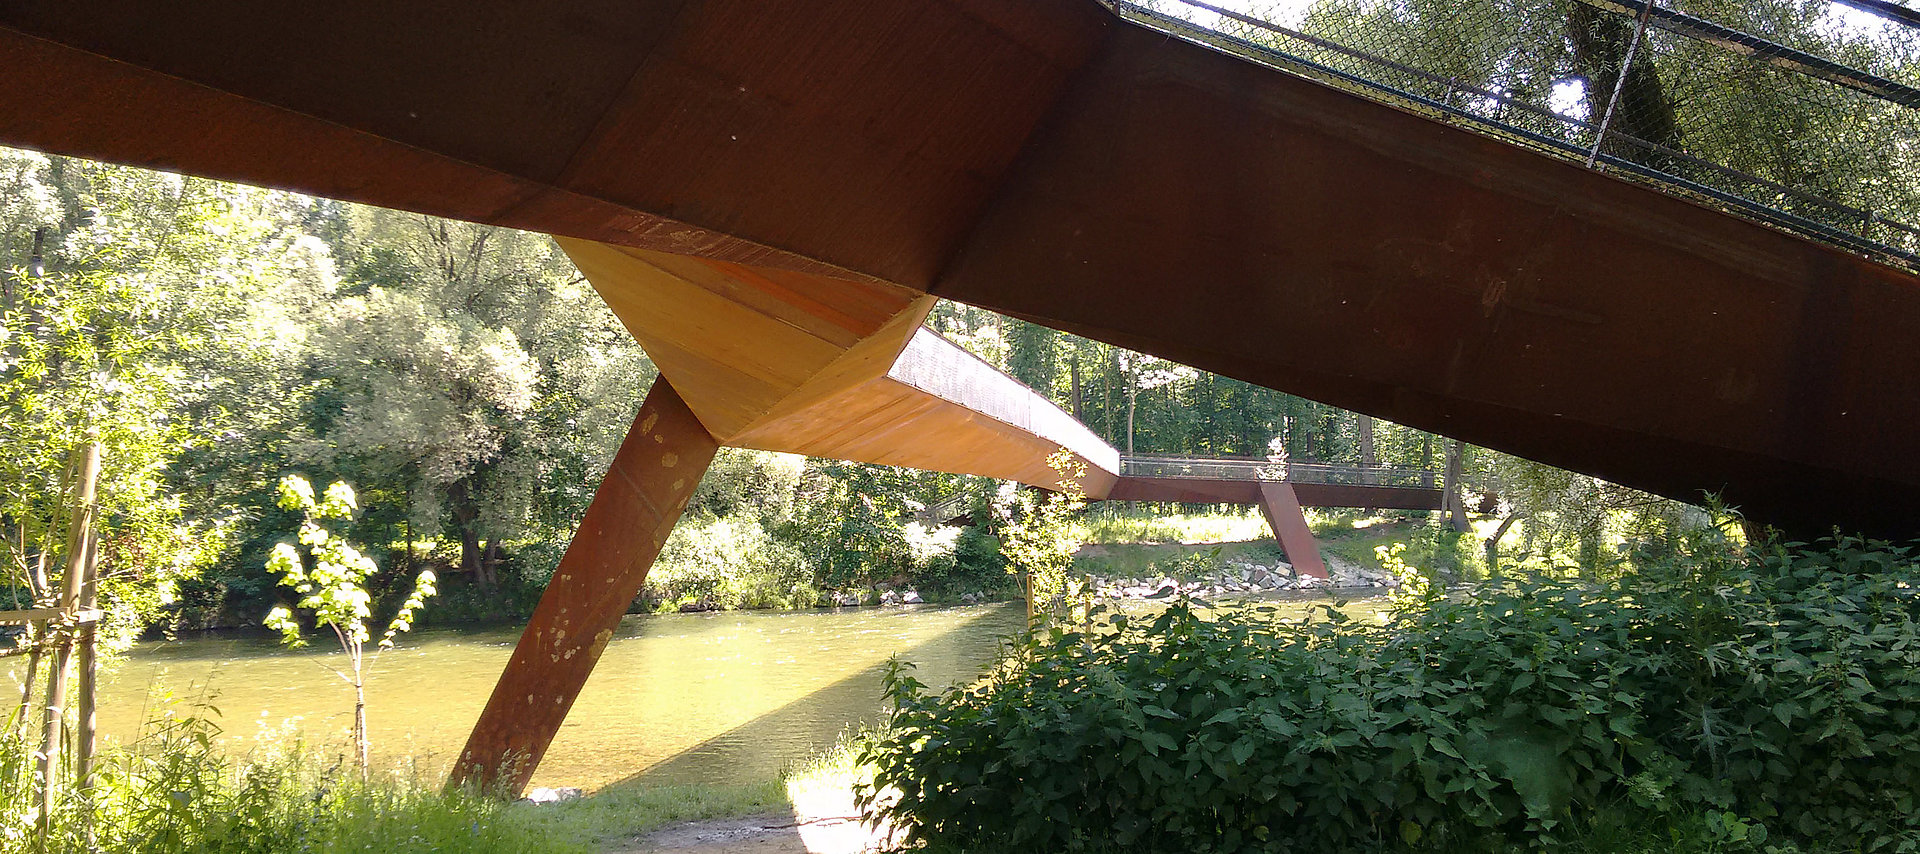 Isarsteg Nord in Freising: steel construction for box girder bridge by Rädlinger